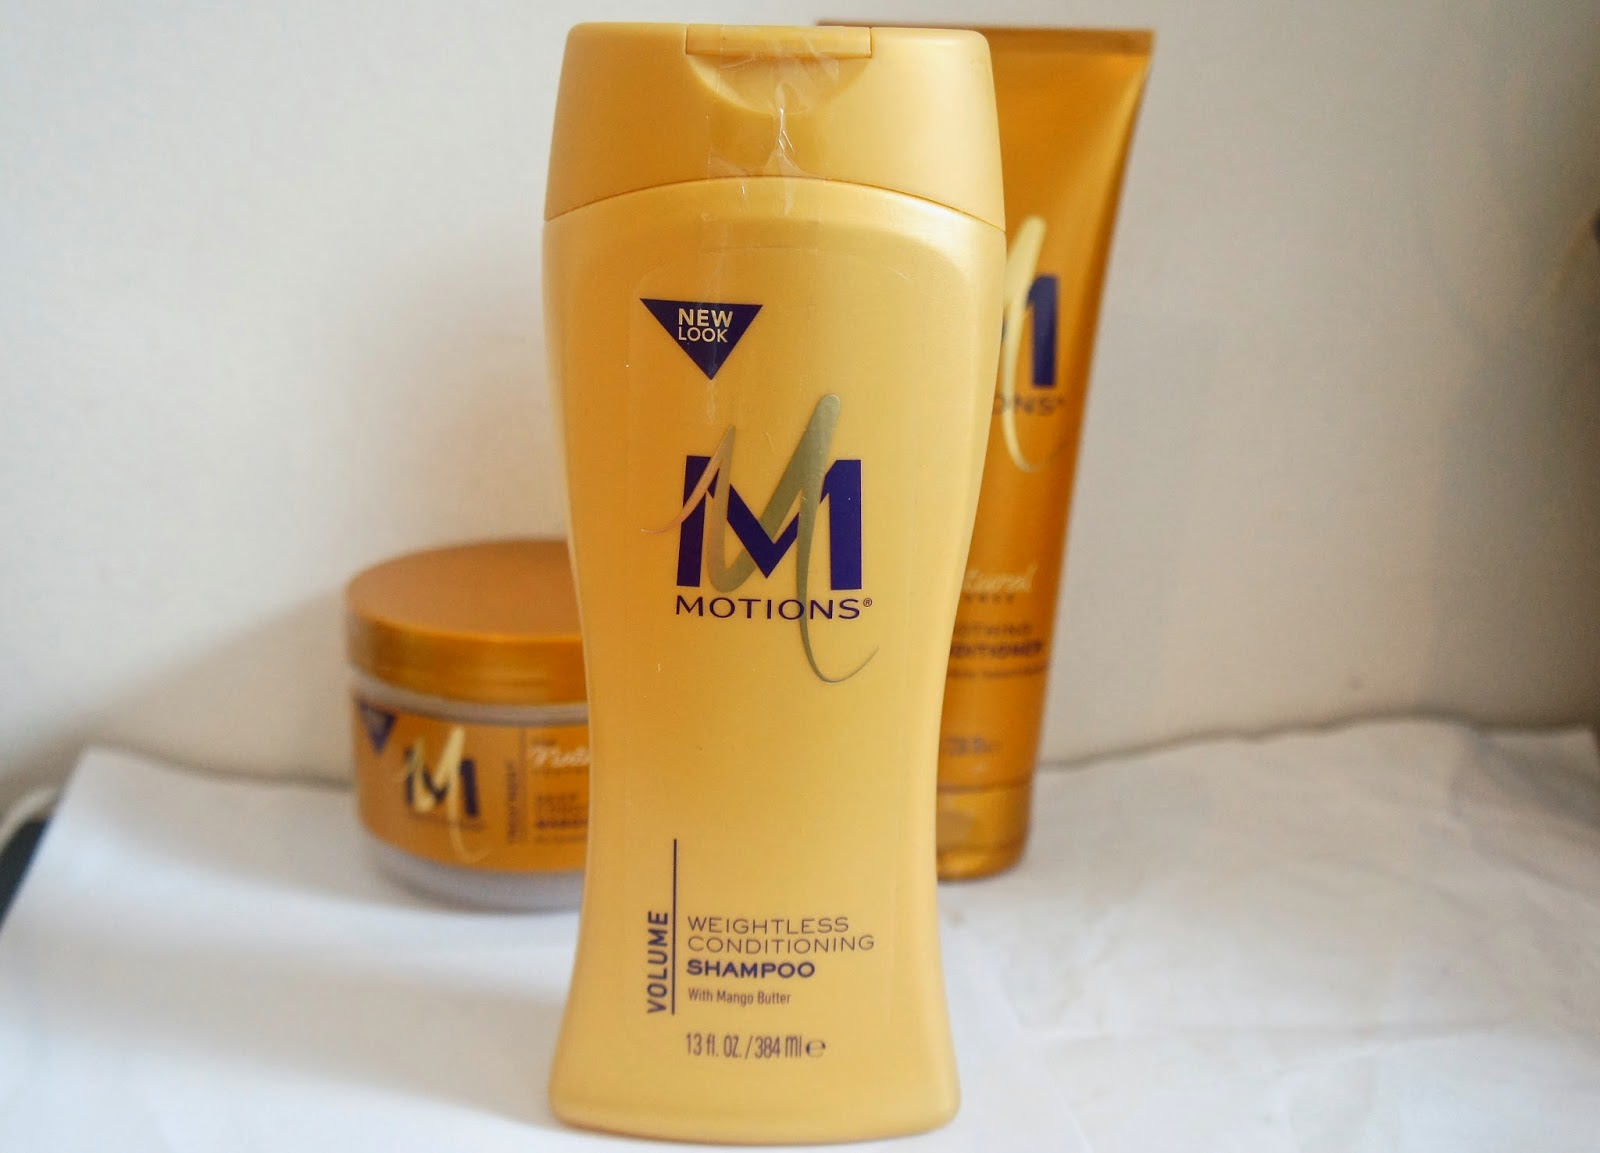 Motions Weightless Conditioning Shampoo Review